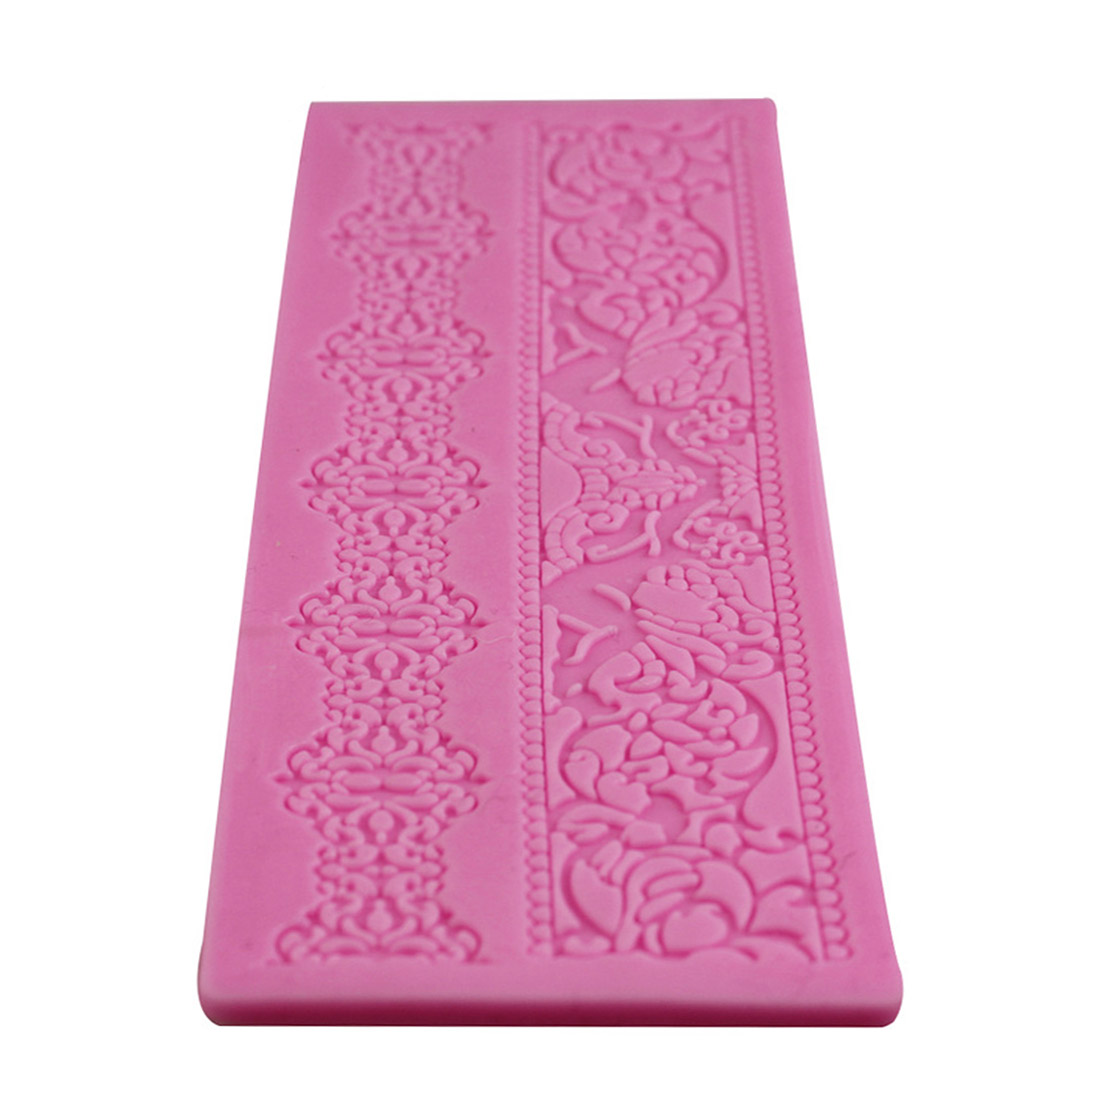 Bake Emboss Mat Mould Craft 1 Pcs Lace Silicone Fondant Embossing Mold Cake Gum Paste Decorating DIY Mould Hot Sales